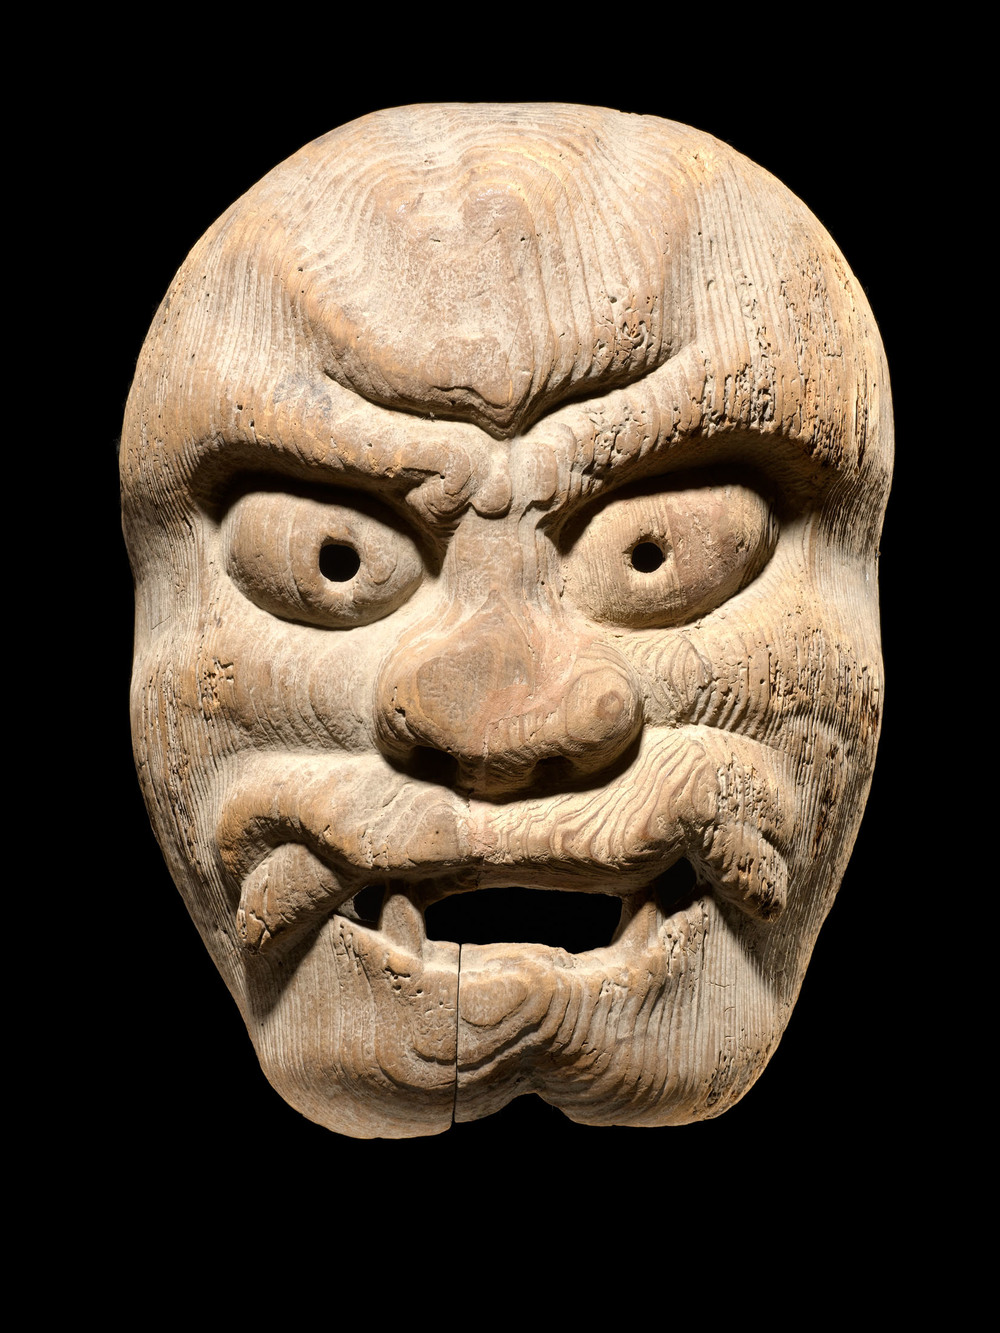 Japan - Shrine Mask, 19th c. Wood  /  9.5 x 7 x 2.25 inches (24.1 x 17.8 x 5.7 cm)  /  M 112s